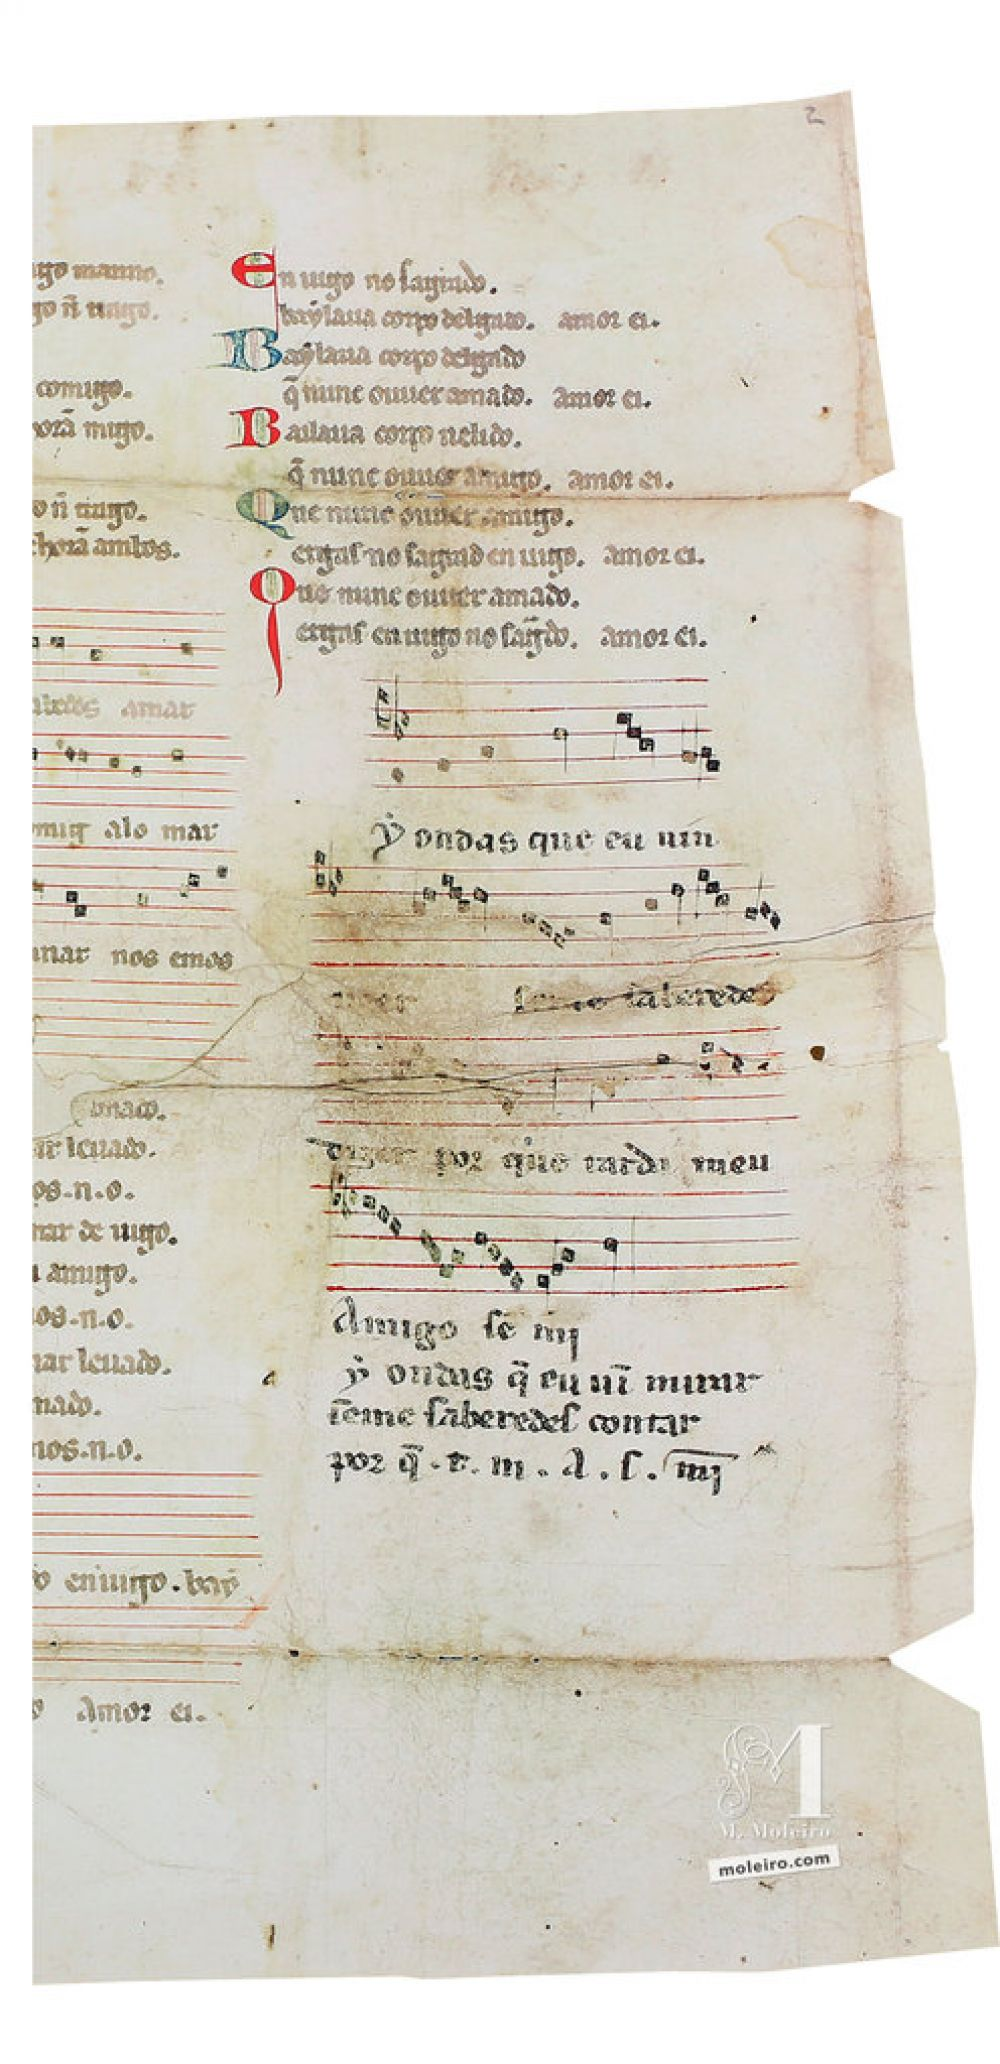 Cantiga 7 of the Vindel Parchment by Martin Codax ms. m979 - The Morgan Library & Museum, New York